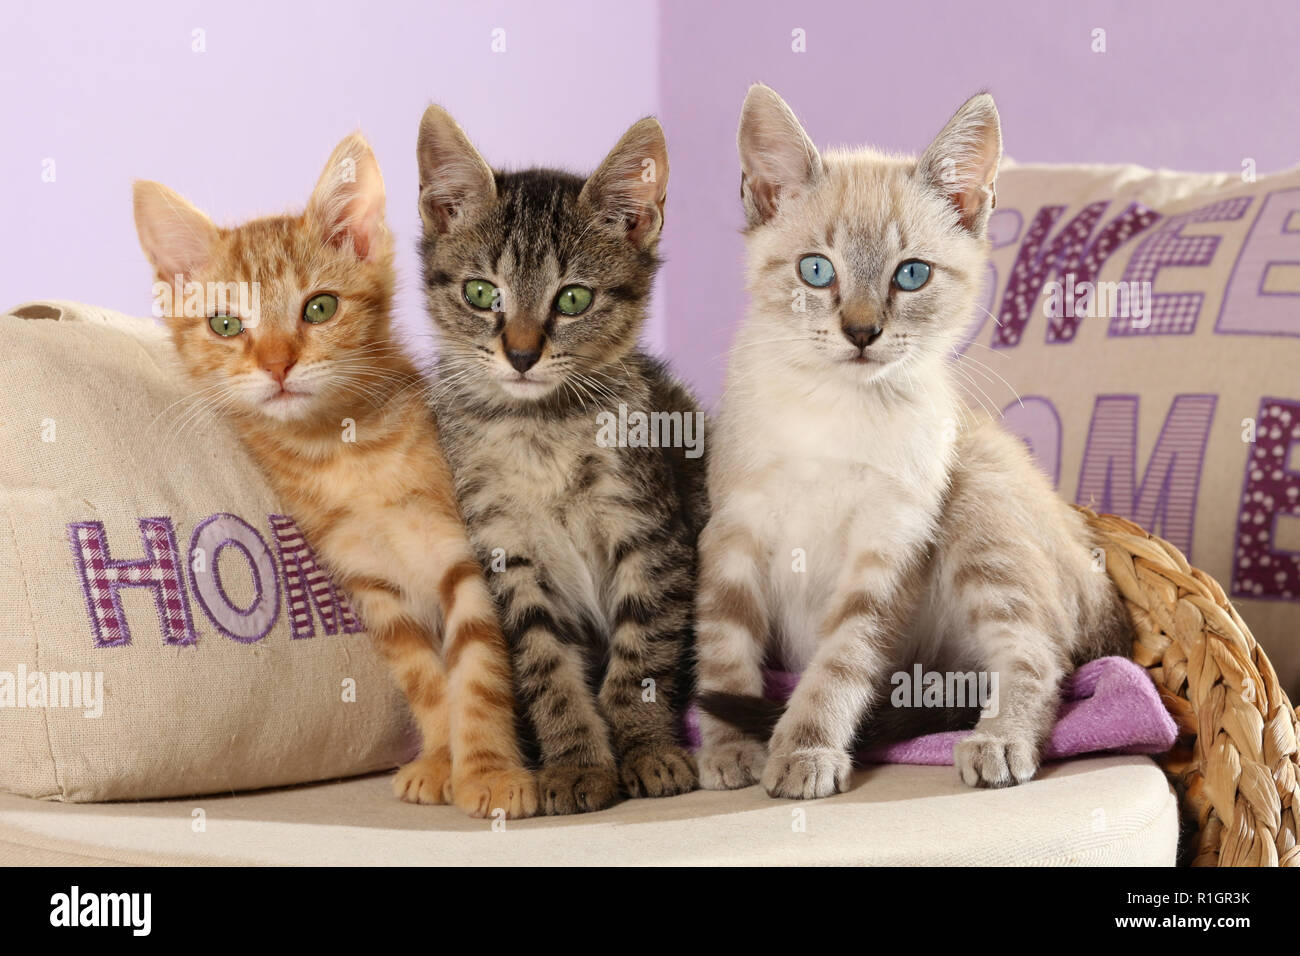 three kittens, 10 weeks old, seal tabby point, black tabby and red tabby ,sitting on a pillow - Stock Image